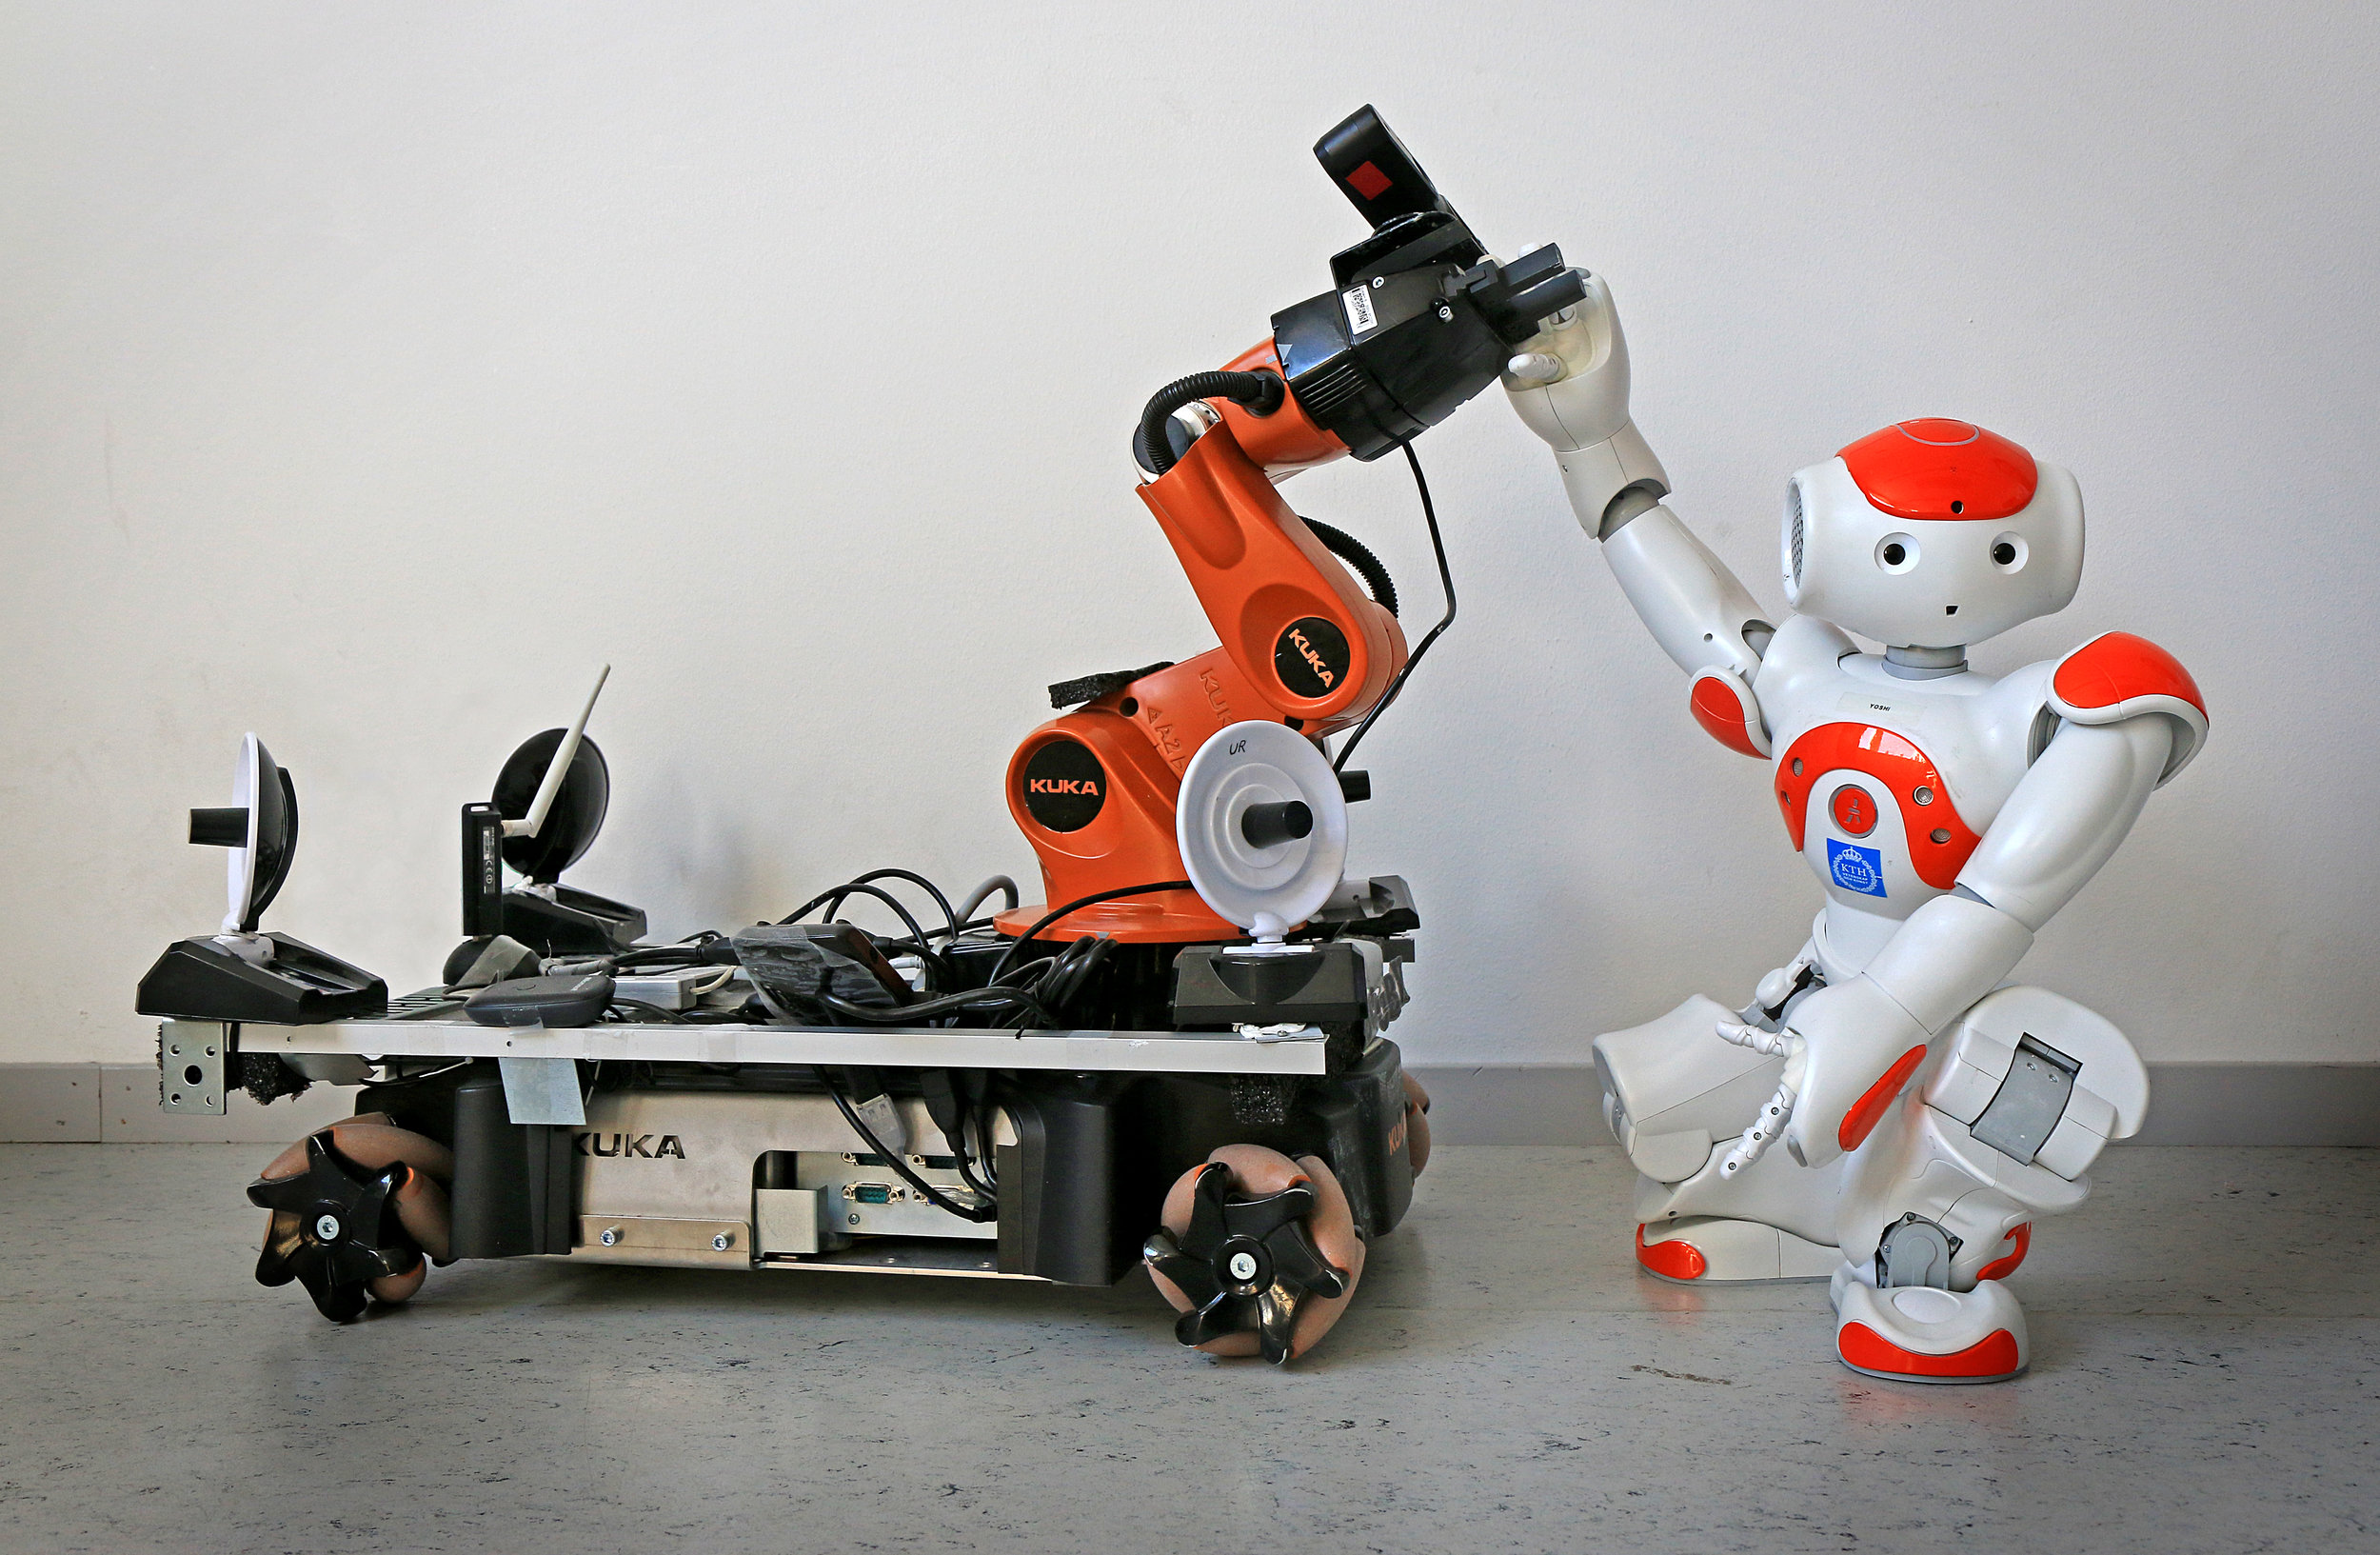 ' They have taught robots to cooperate ' by Peter Larsson ( CC BY 3.0 ), via Wikimedia Commons.